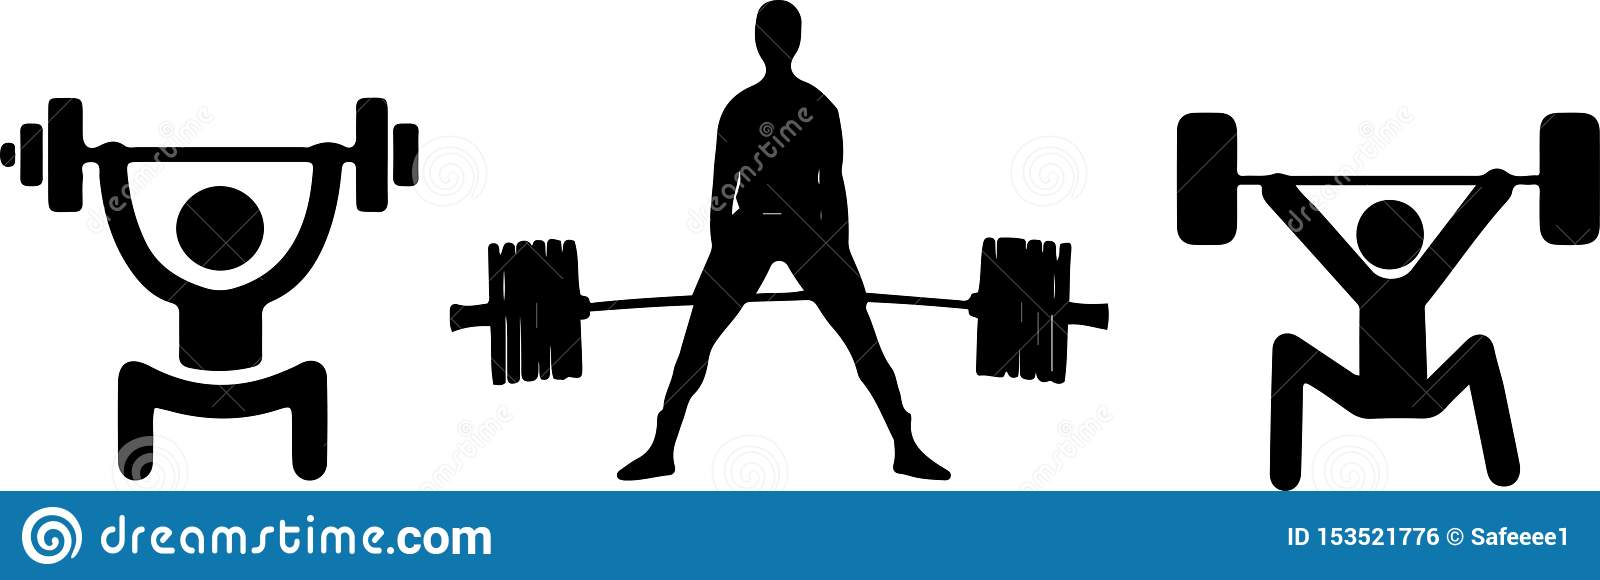 Kettlebell lifting stock photo. Image of person